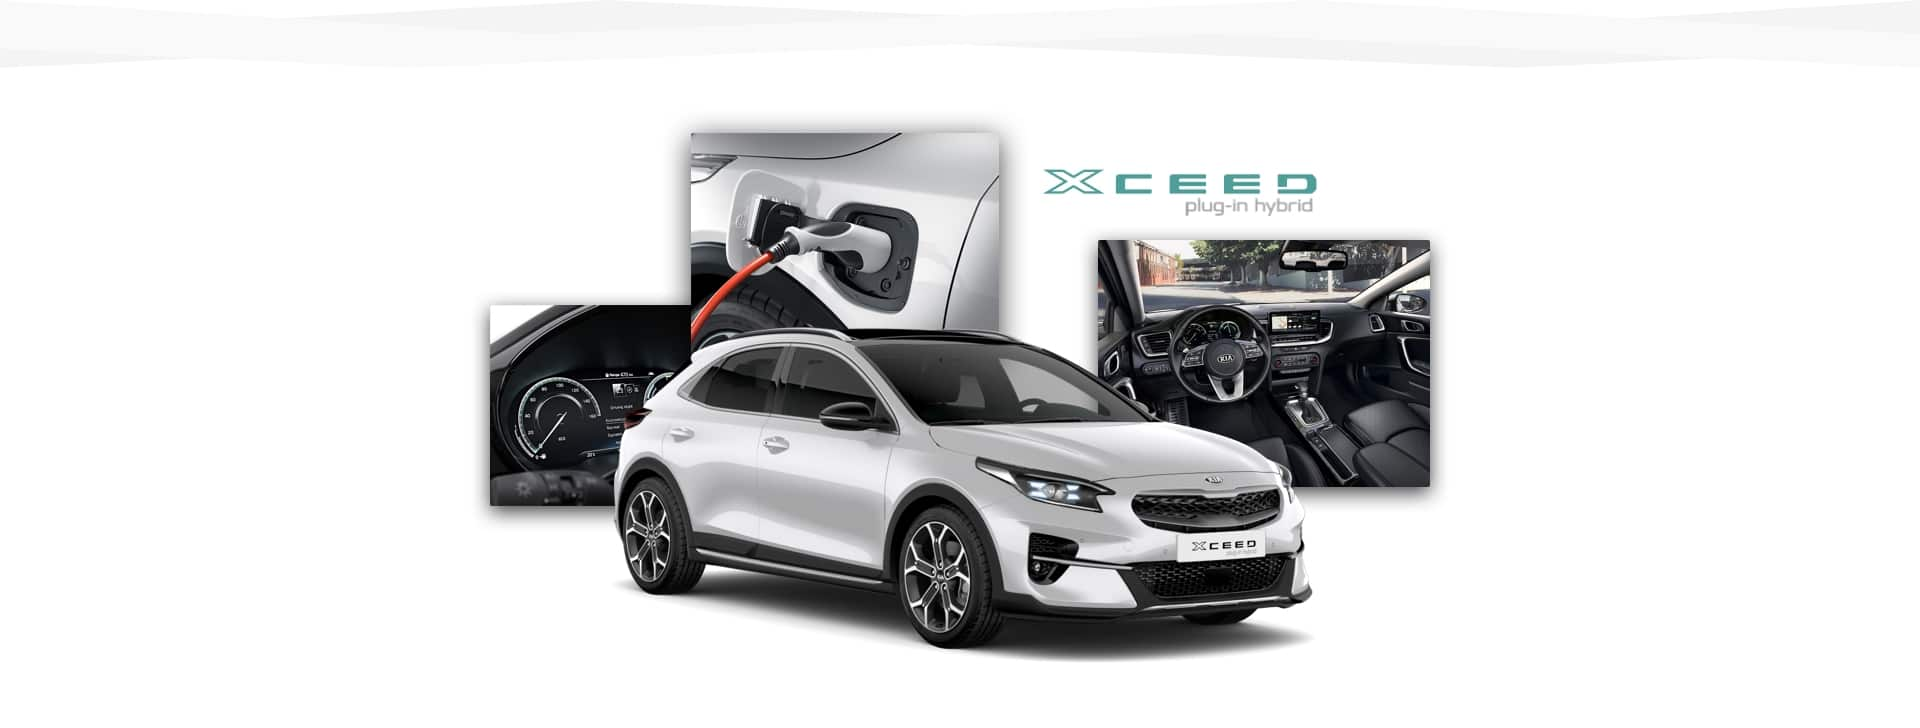 Side view of Kia XCeed Plug-In Hybrid with shots of charging point, cabin and instrument cluster